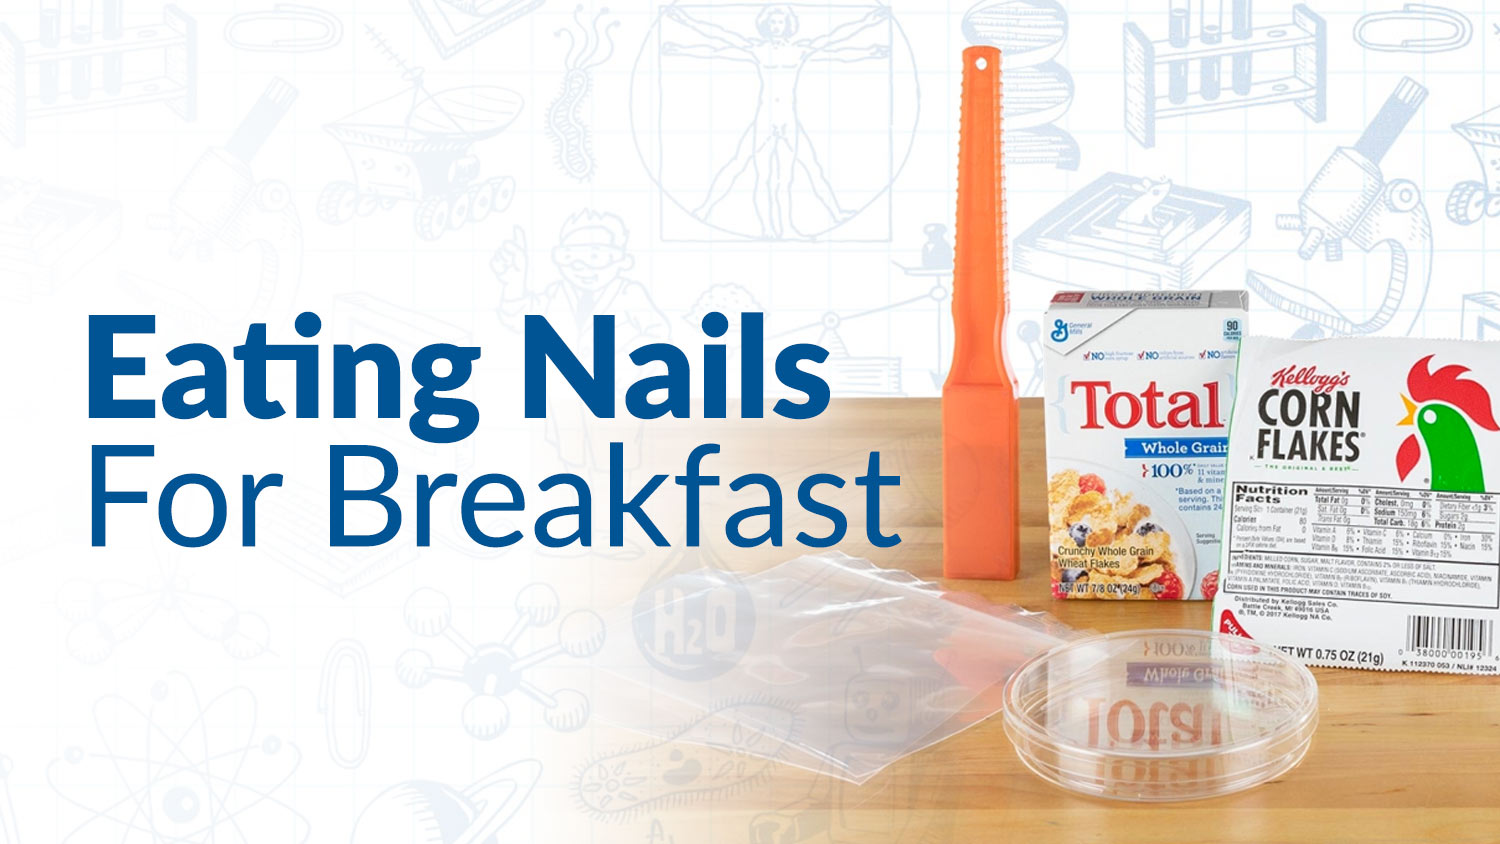 Eating Nails for Breakfast